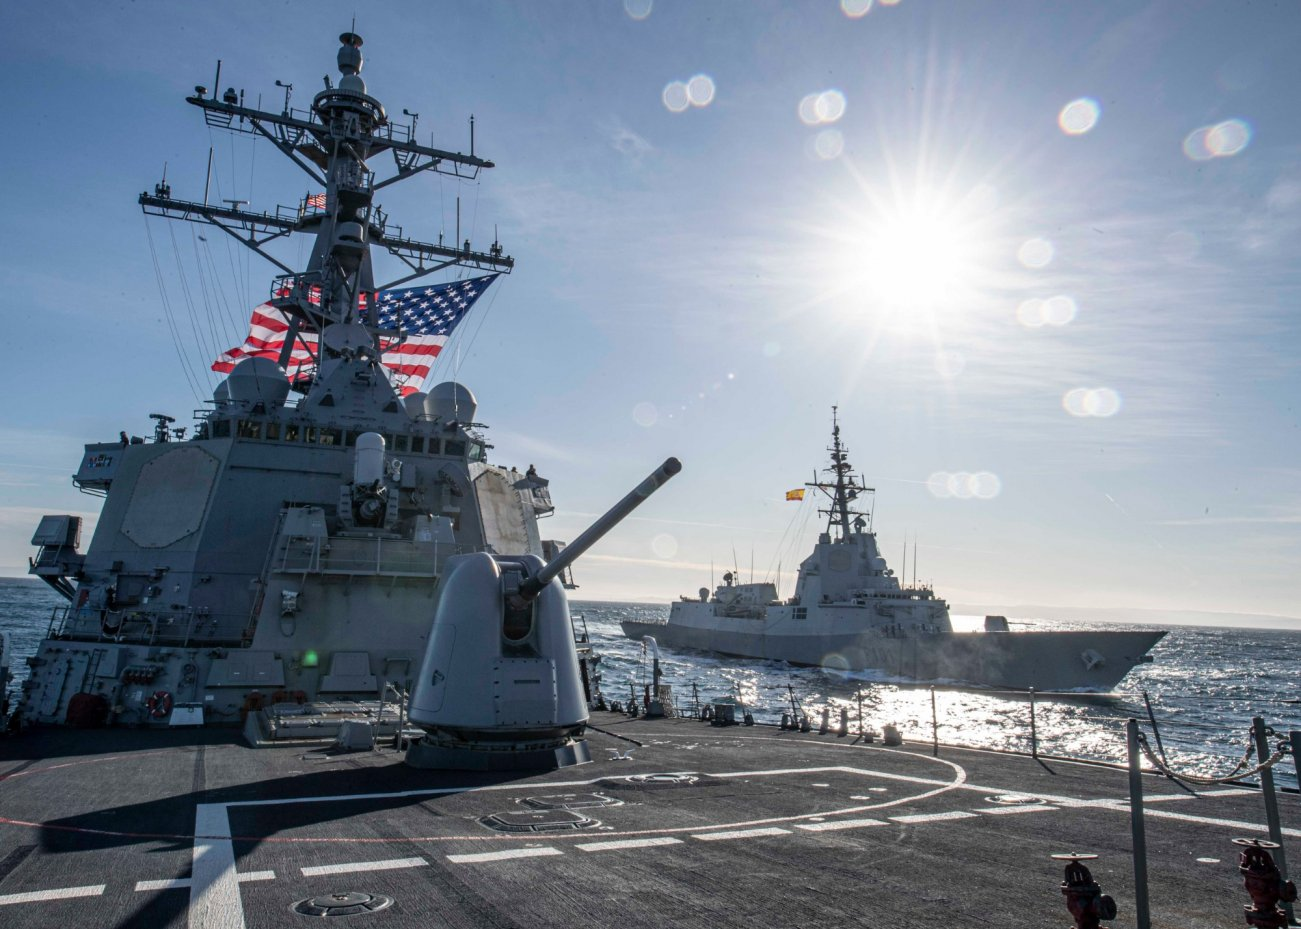 The Navy's New Guided Missile Frigate Has America's Enemies On Edge